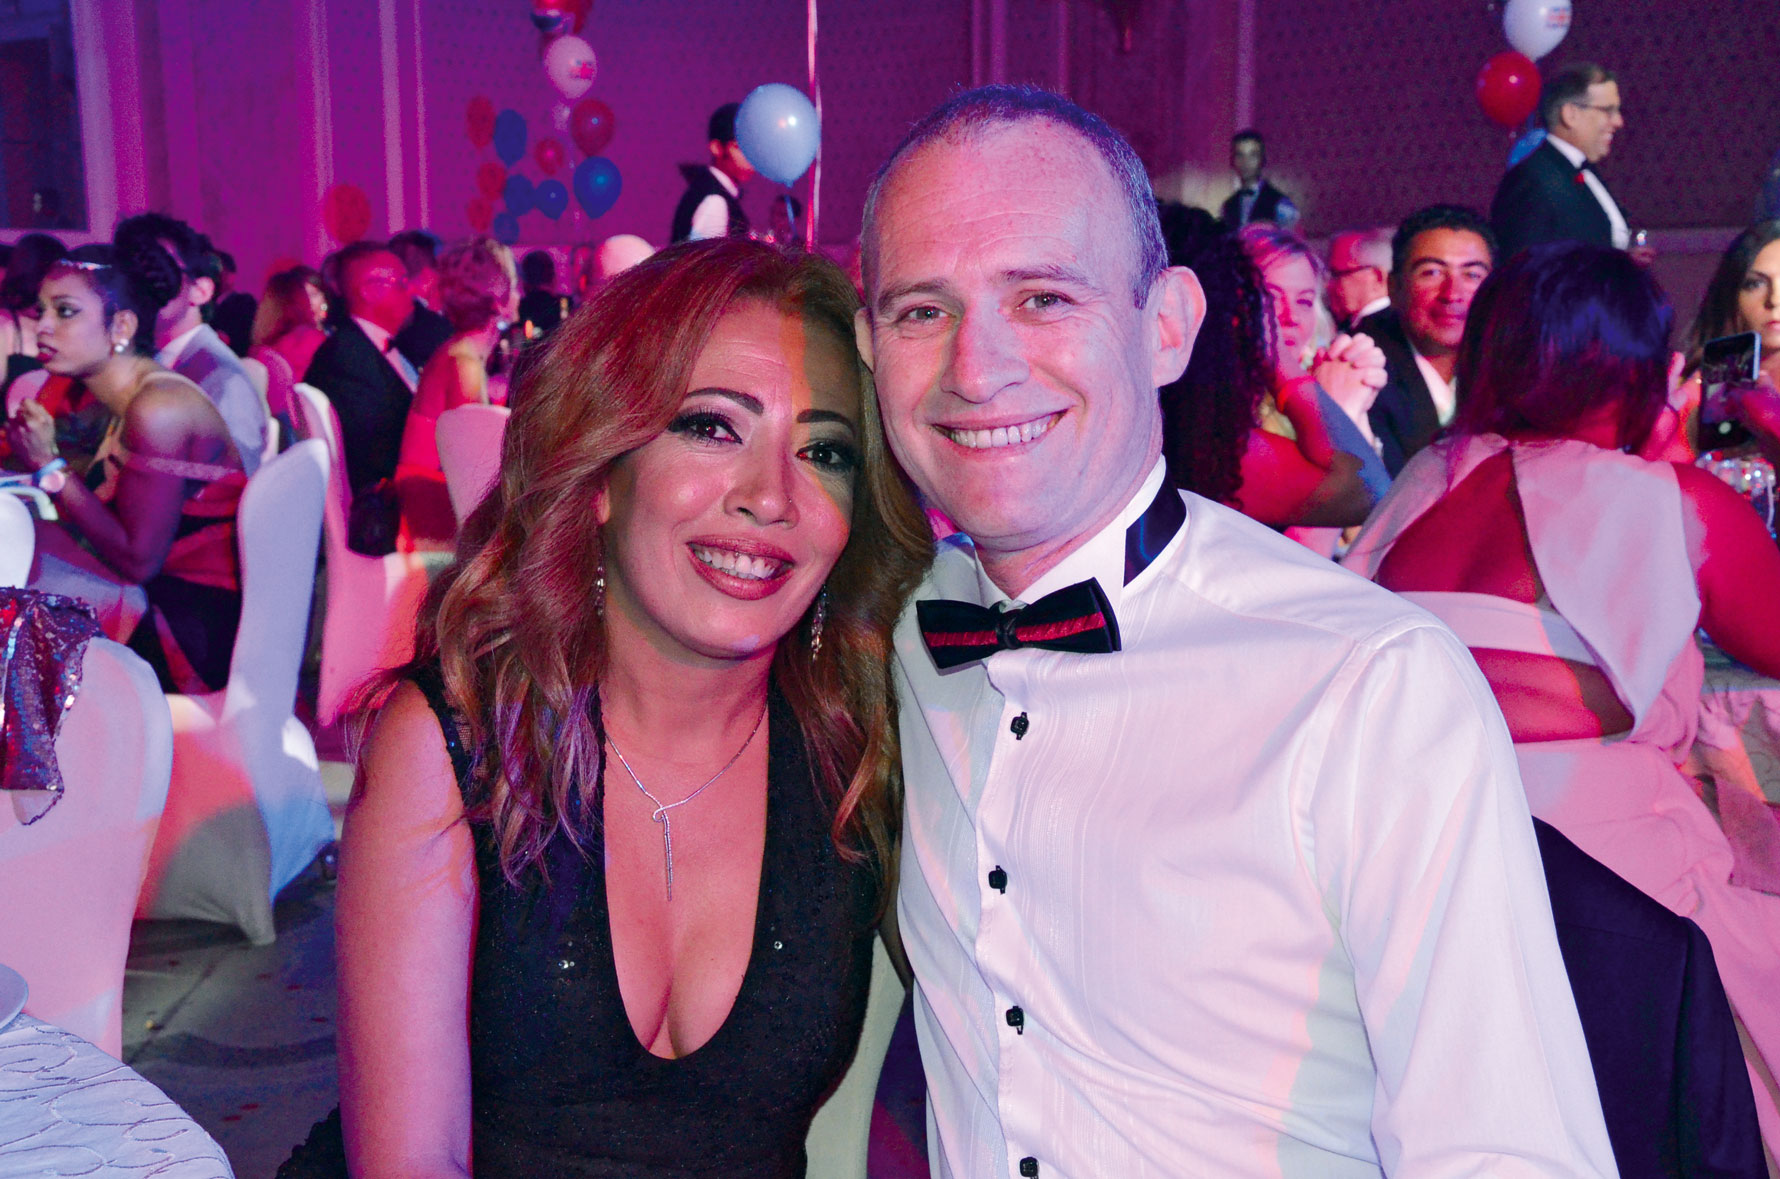 Ms. Rania El Adl &  Mr. Chris Thomas